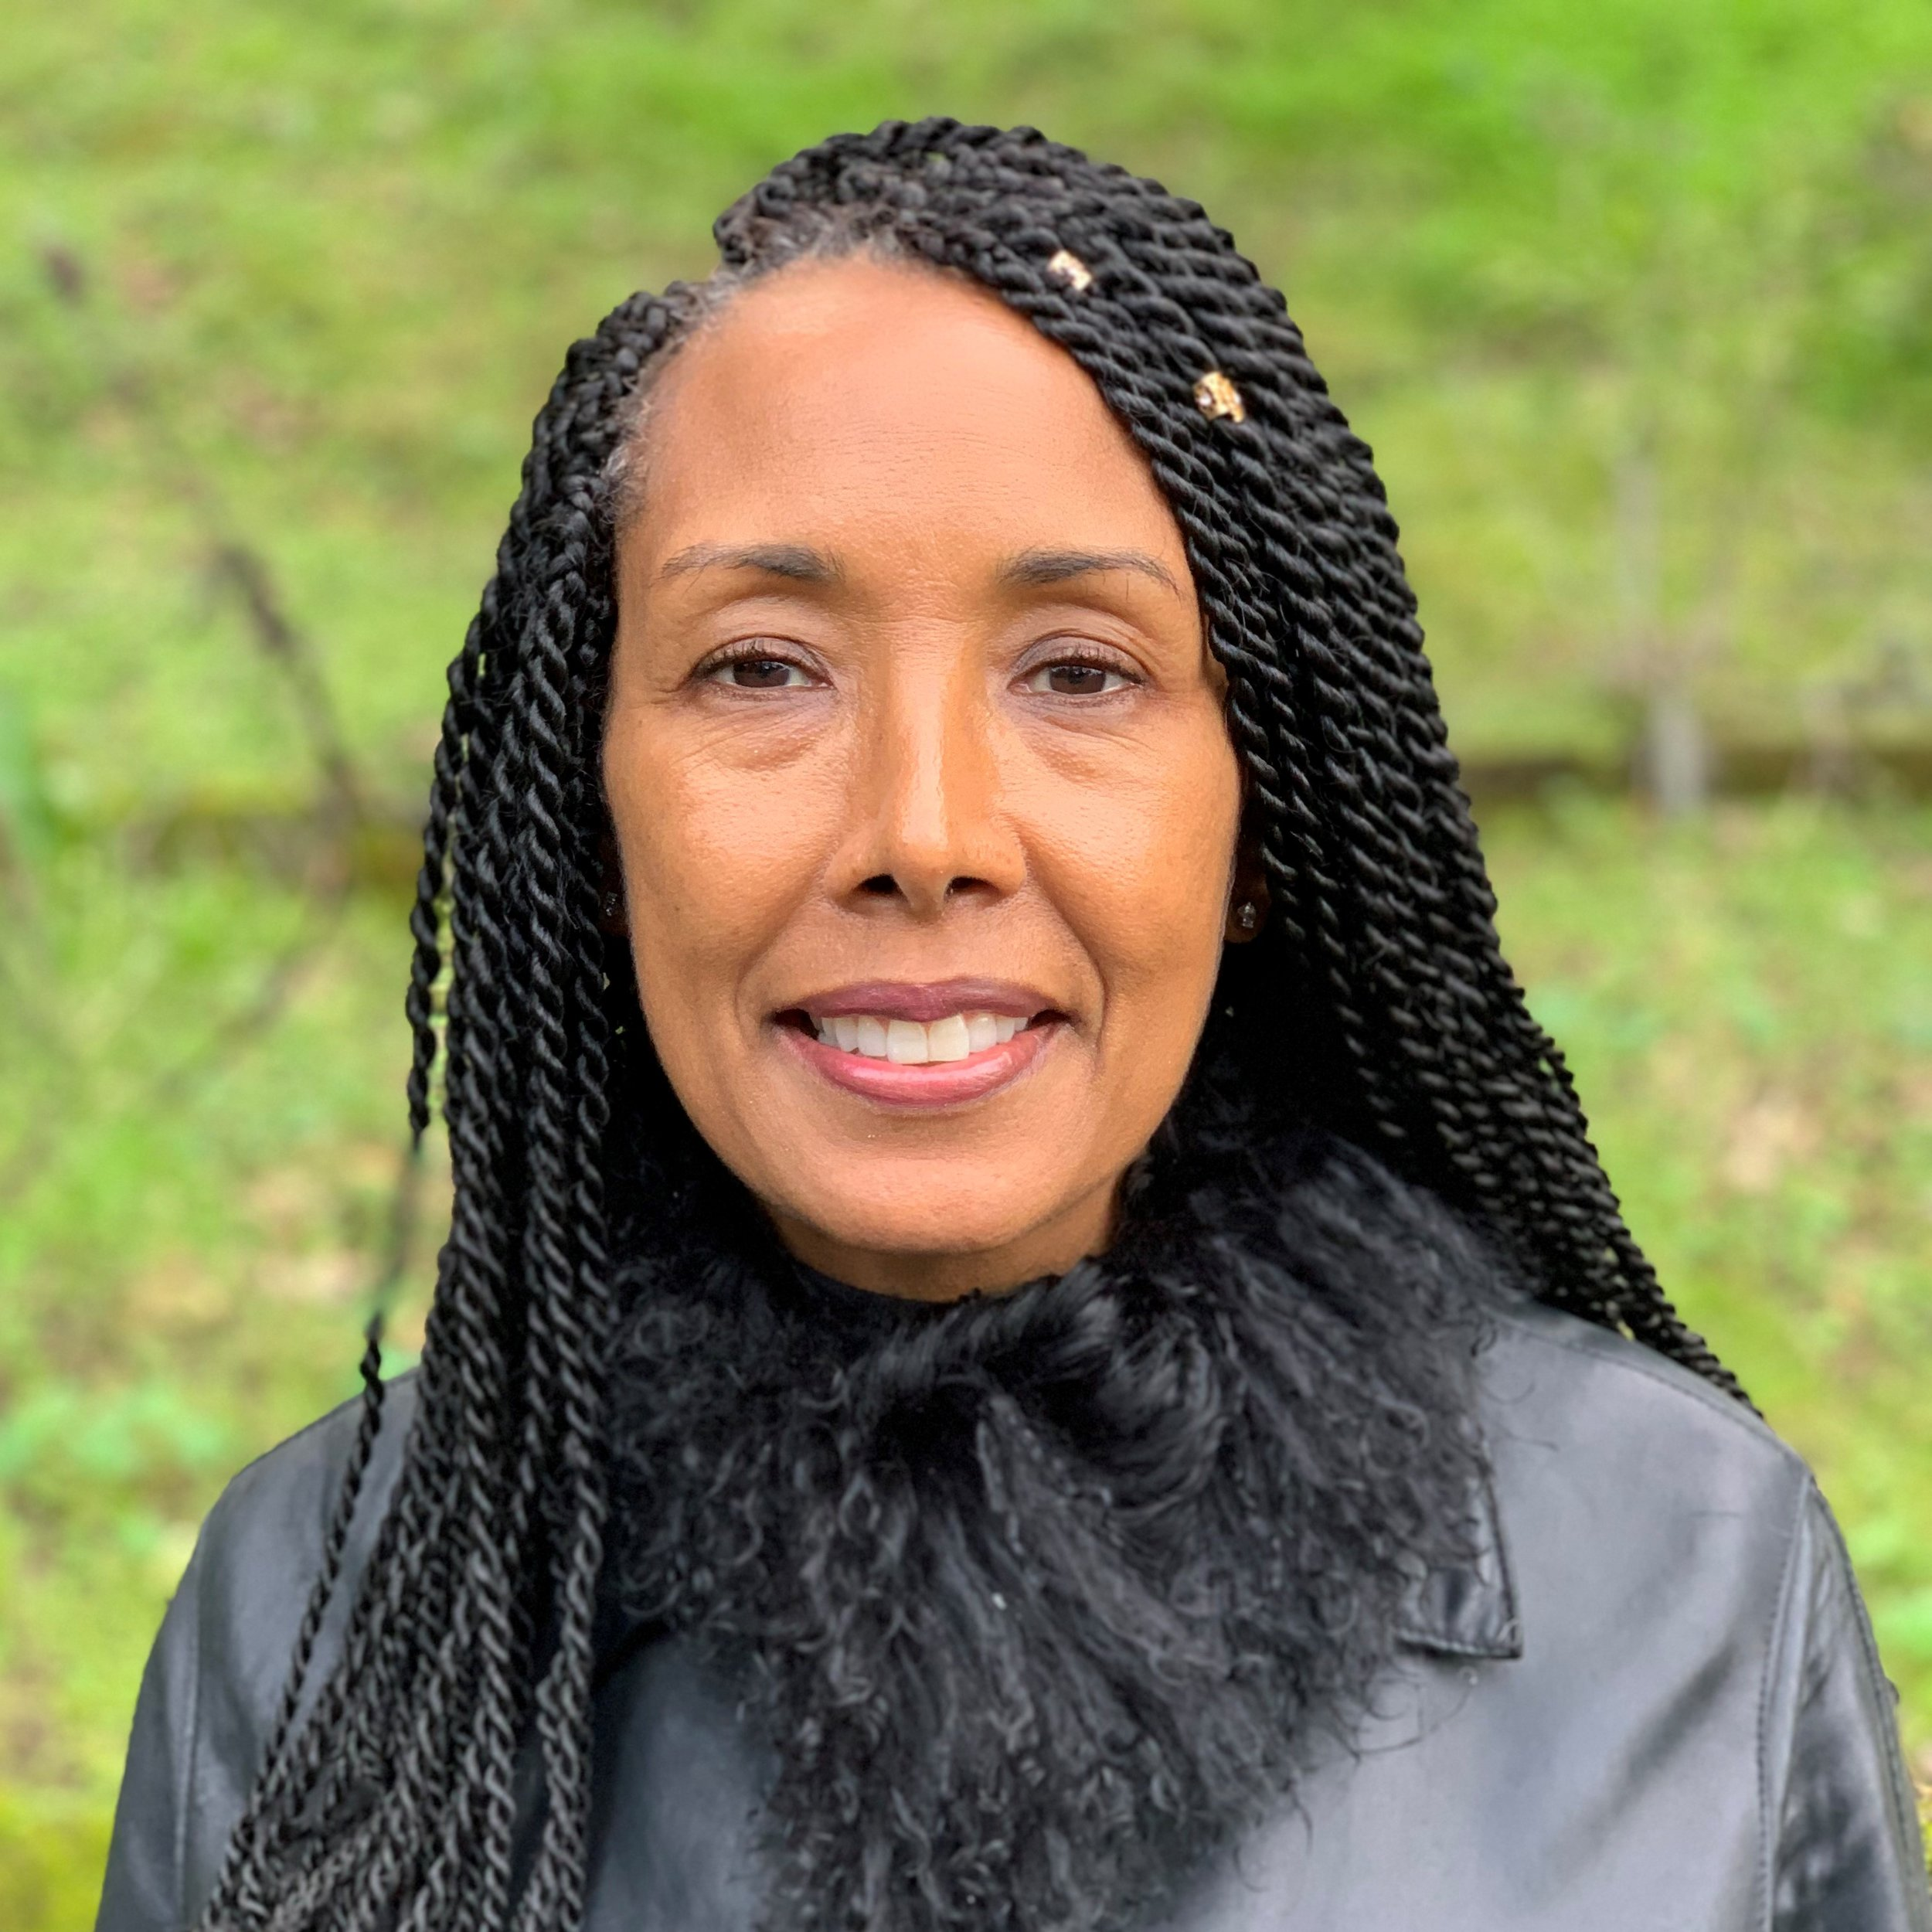 """Teiahsha BankheadRestorative Justice for Oakland Youth - """"To be a beacon of peace, embracing radical honesty, grounded purpose and equanimity to cultivate compassionate community healing. """""""